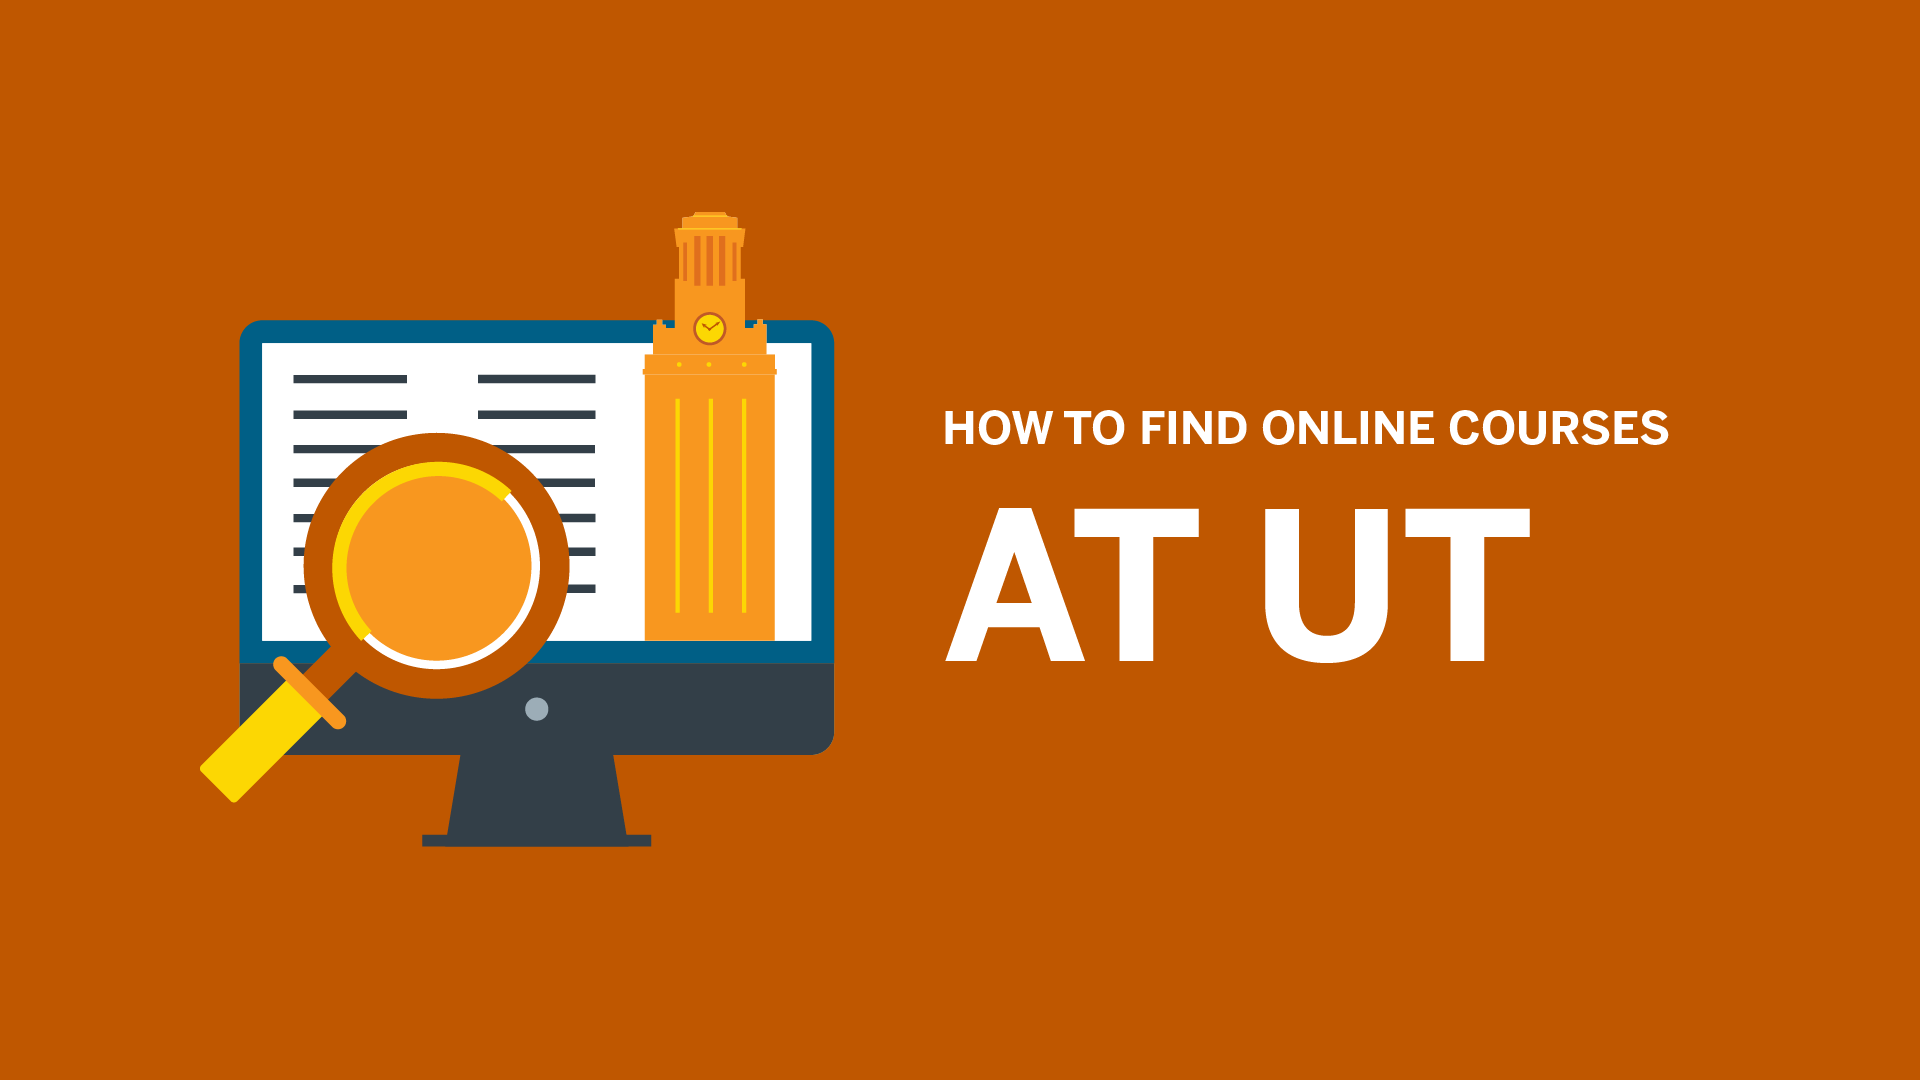 How to Find Online Courses at UT video thumbnail, click to play